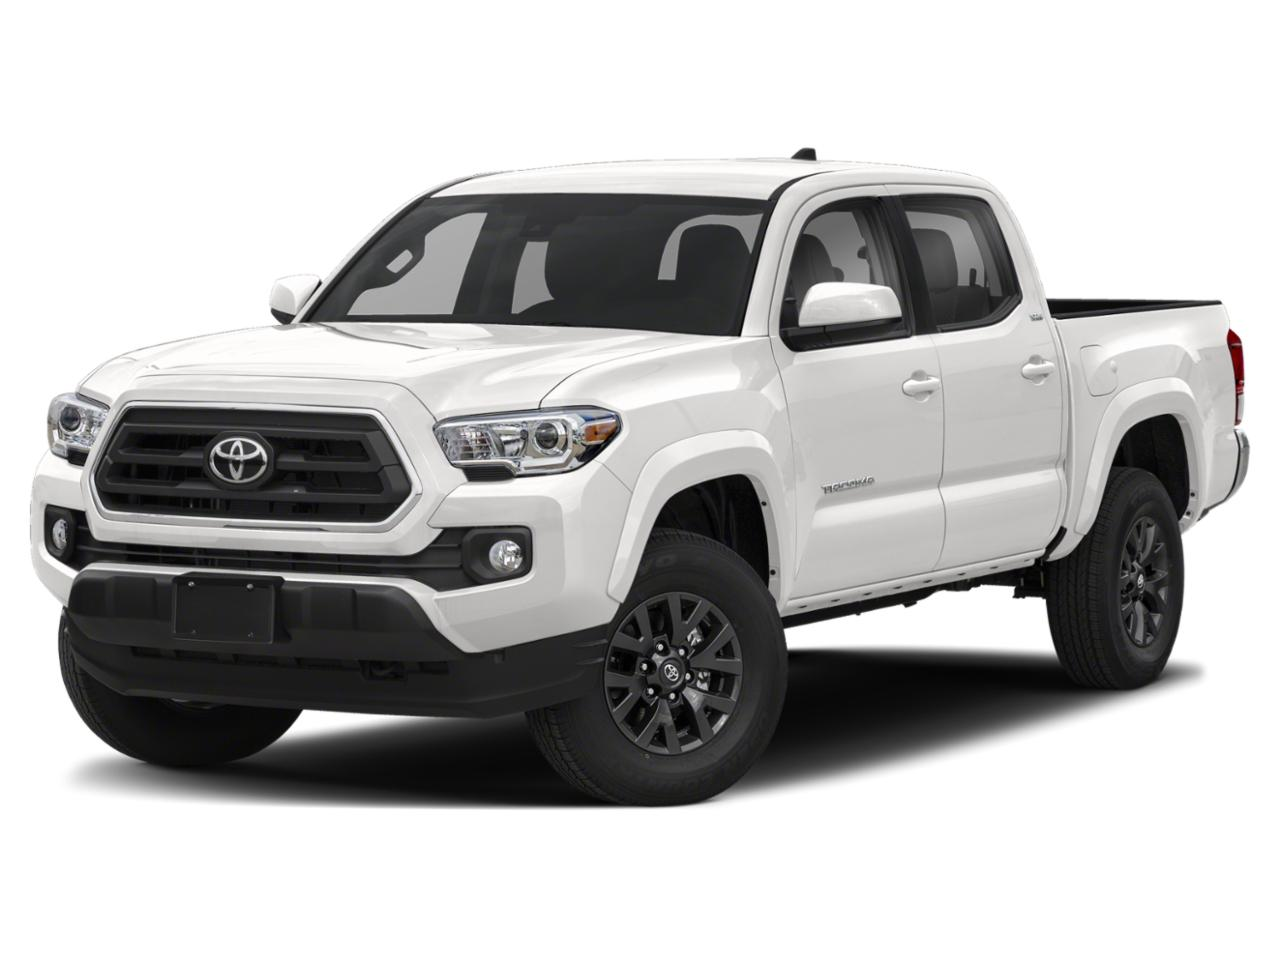 2020 Toyota Tacoma 4WD Vehicle Photo in Spruce Pine, NC 28777